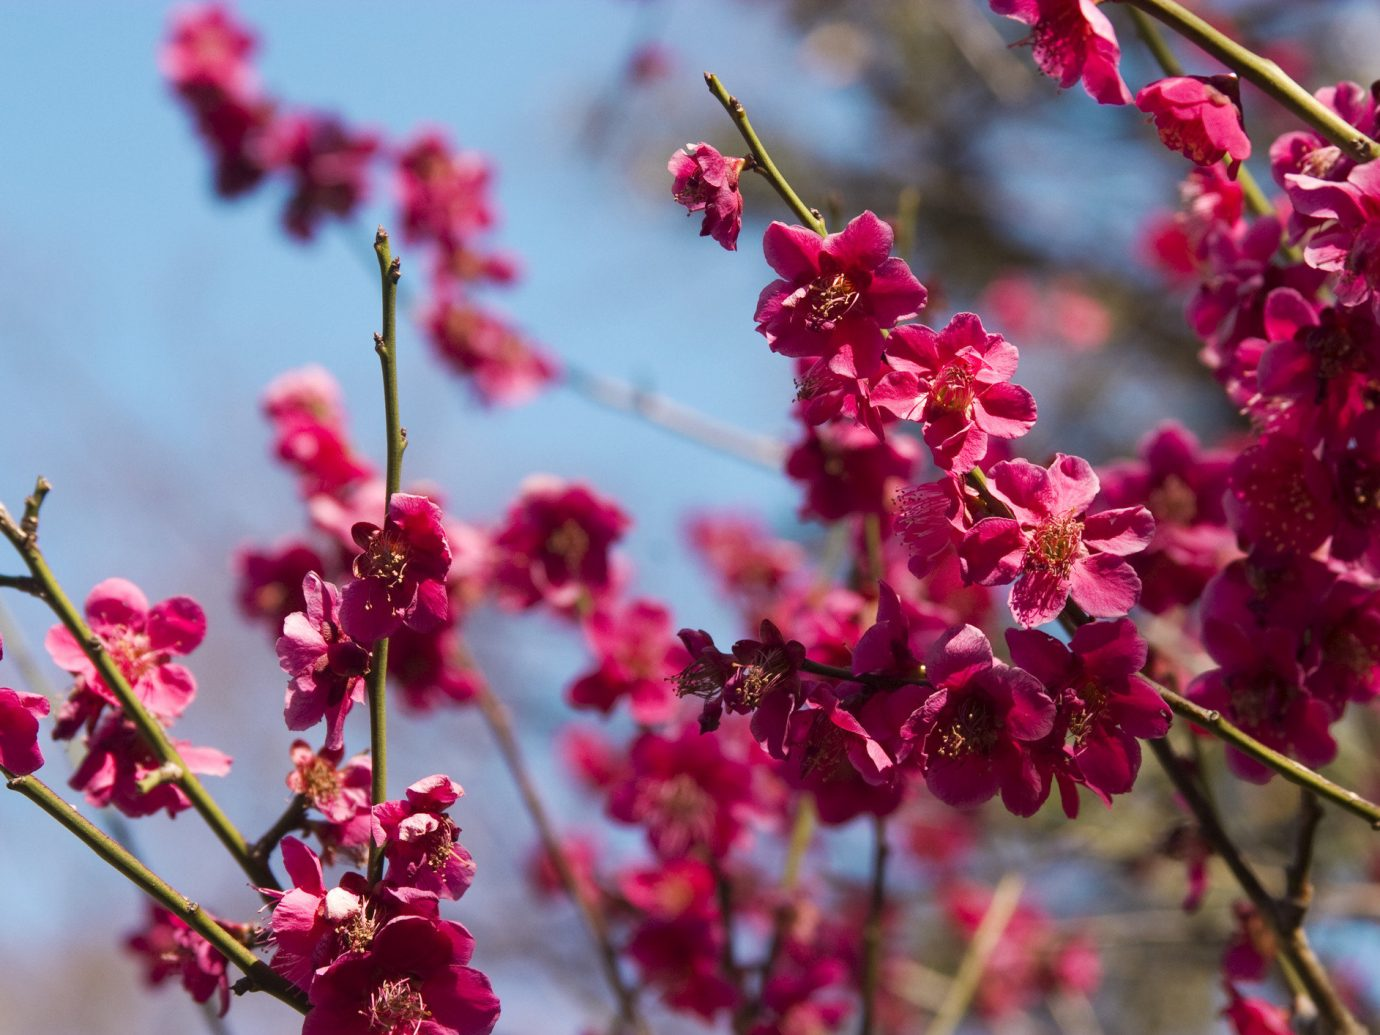 Trip Ideas flower red blossom plant flora outdoor tree branch botany produce fruit pink spring land plant food cherry bouquet leaf petal shrub macro photography flowering plant colorful close colored